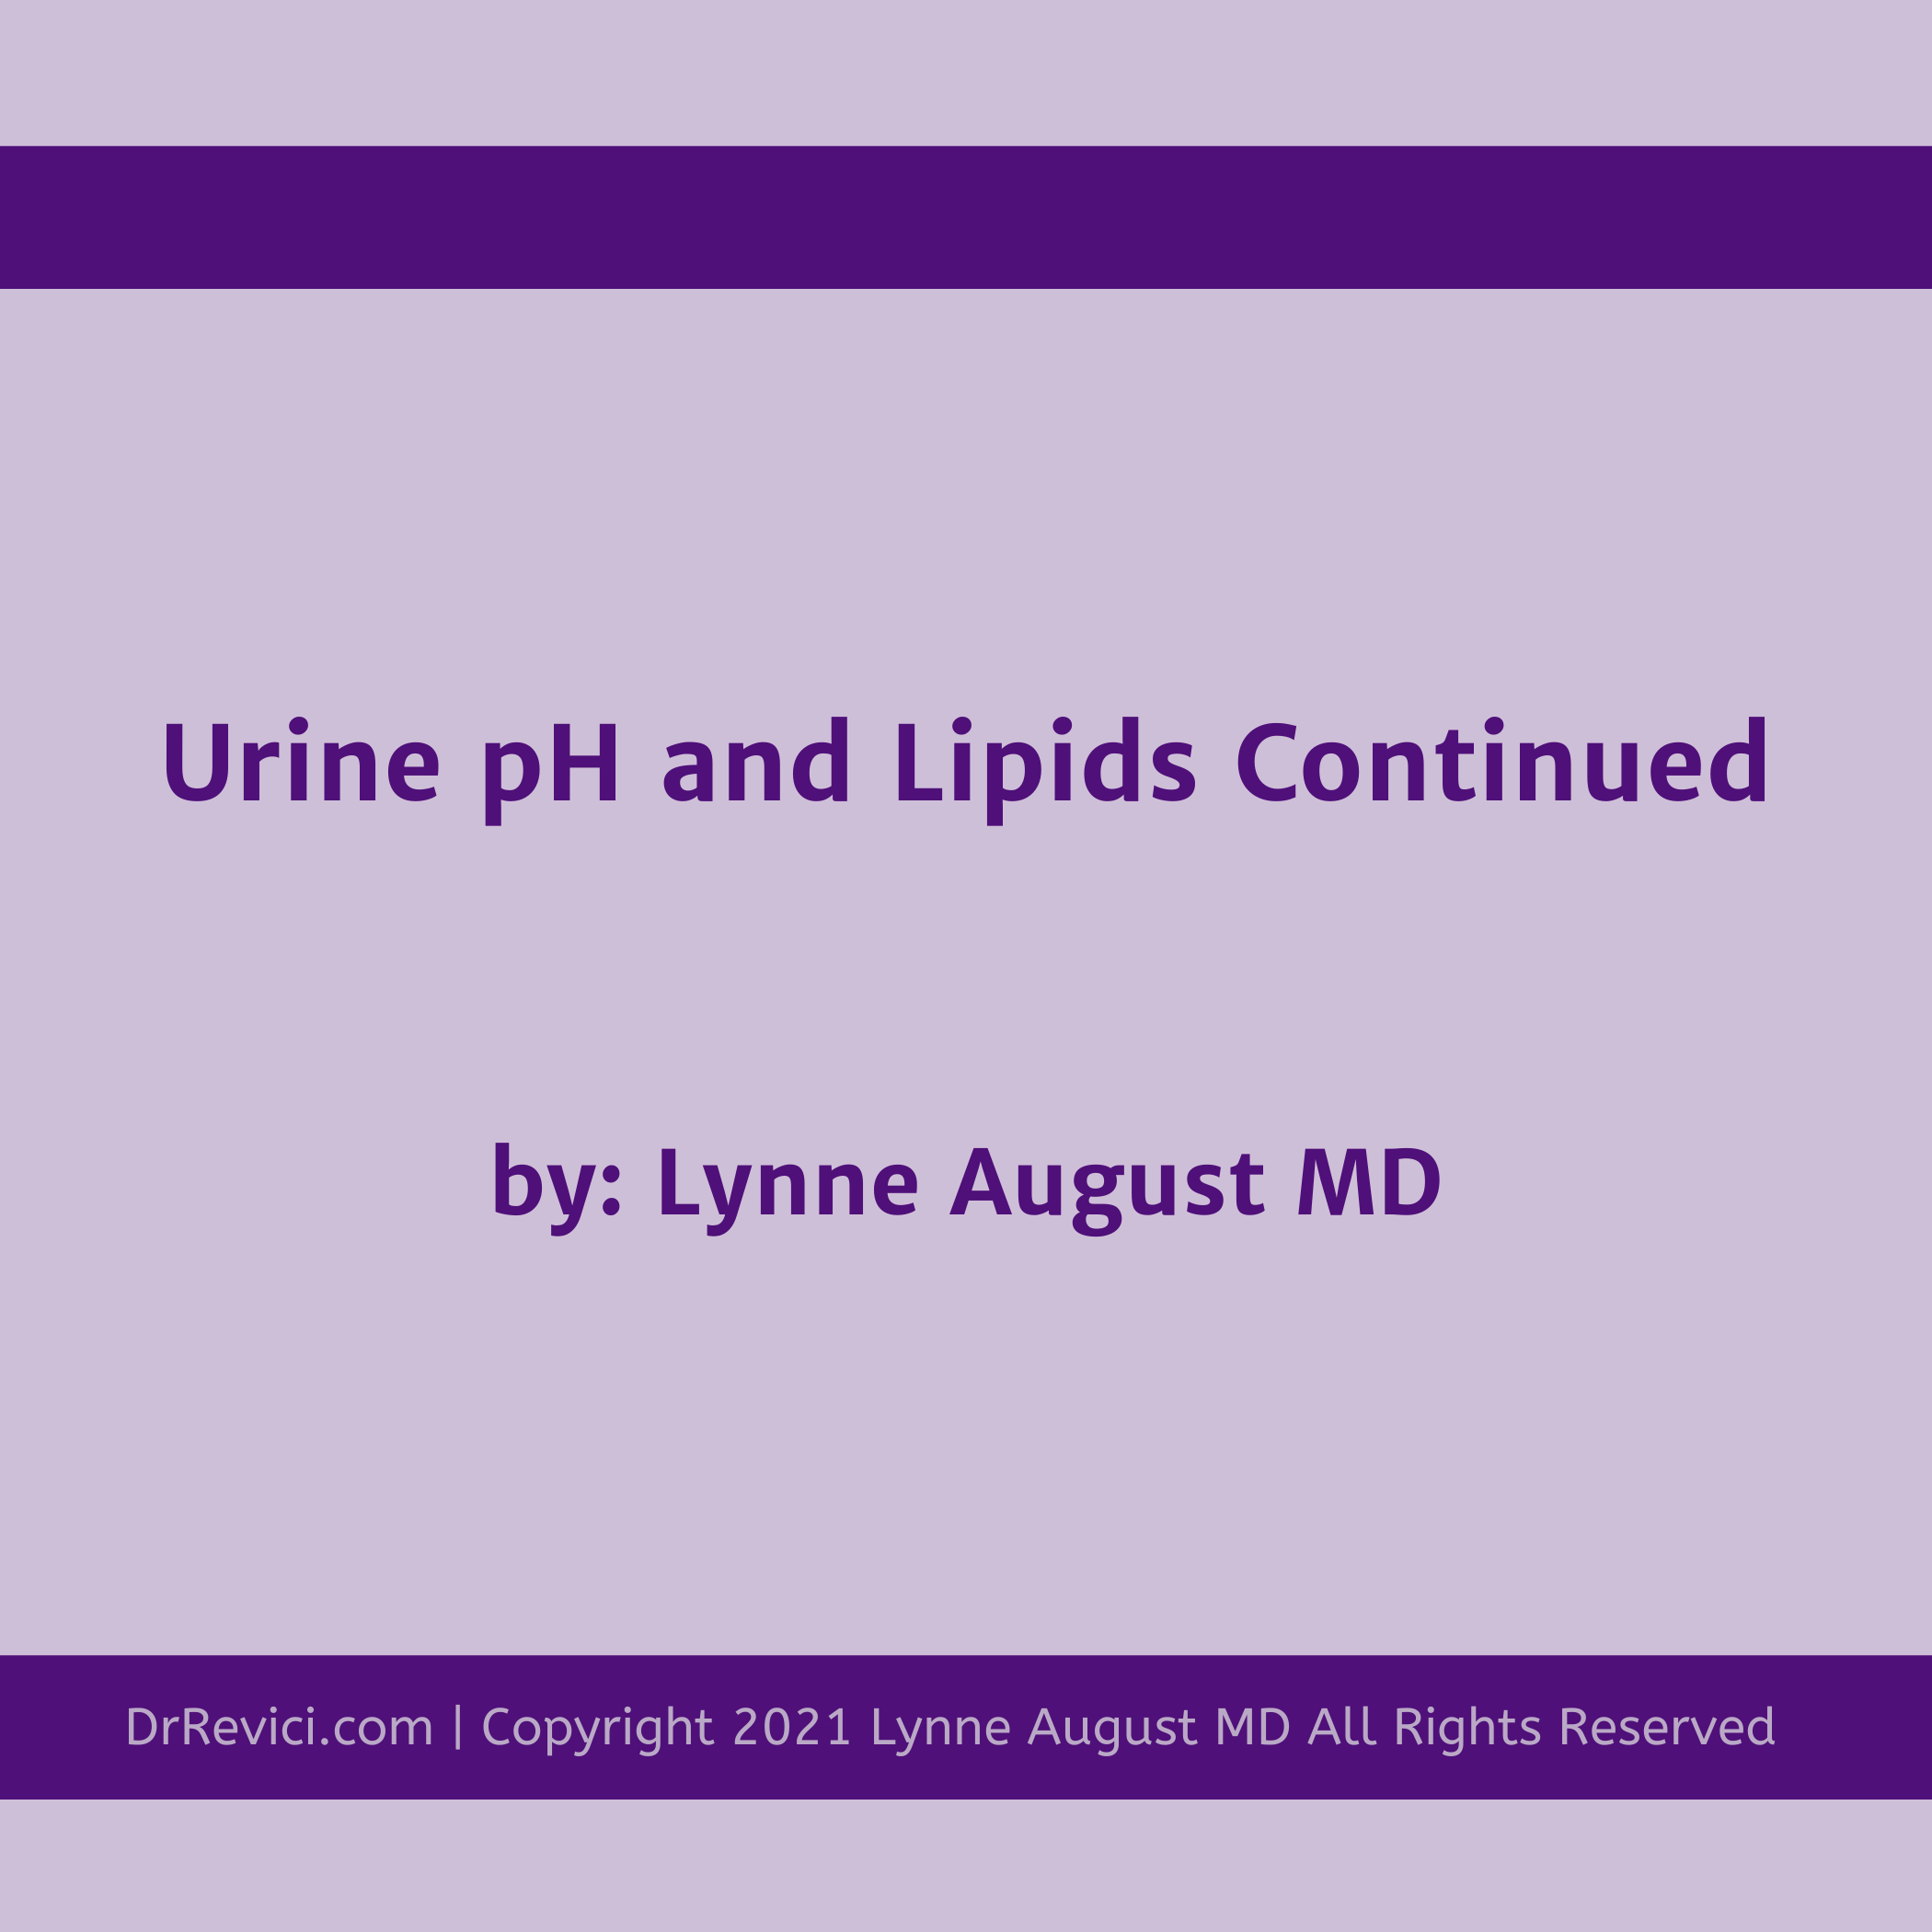 podcast title image Urine pH and Lipids Continued